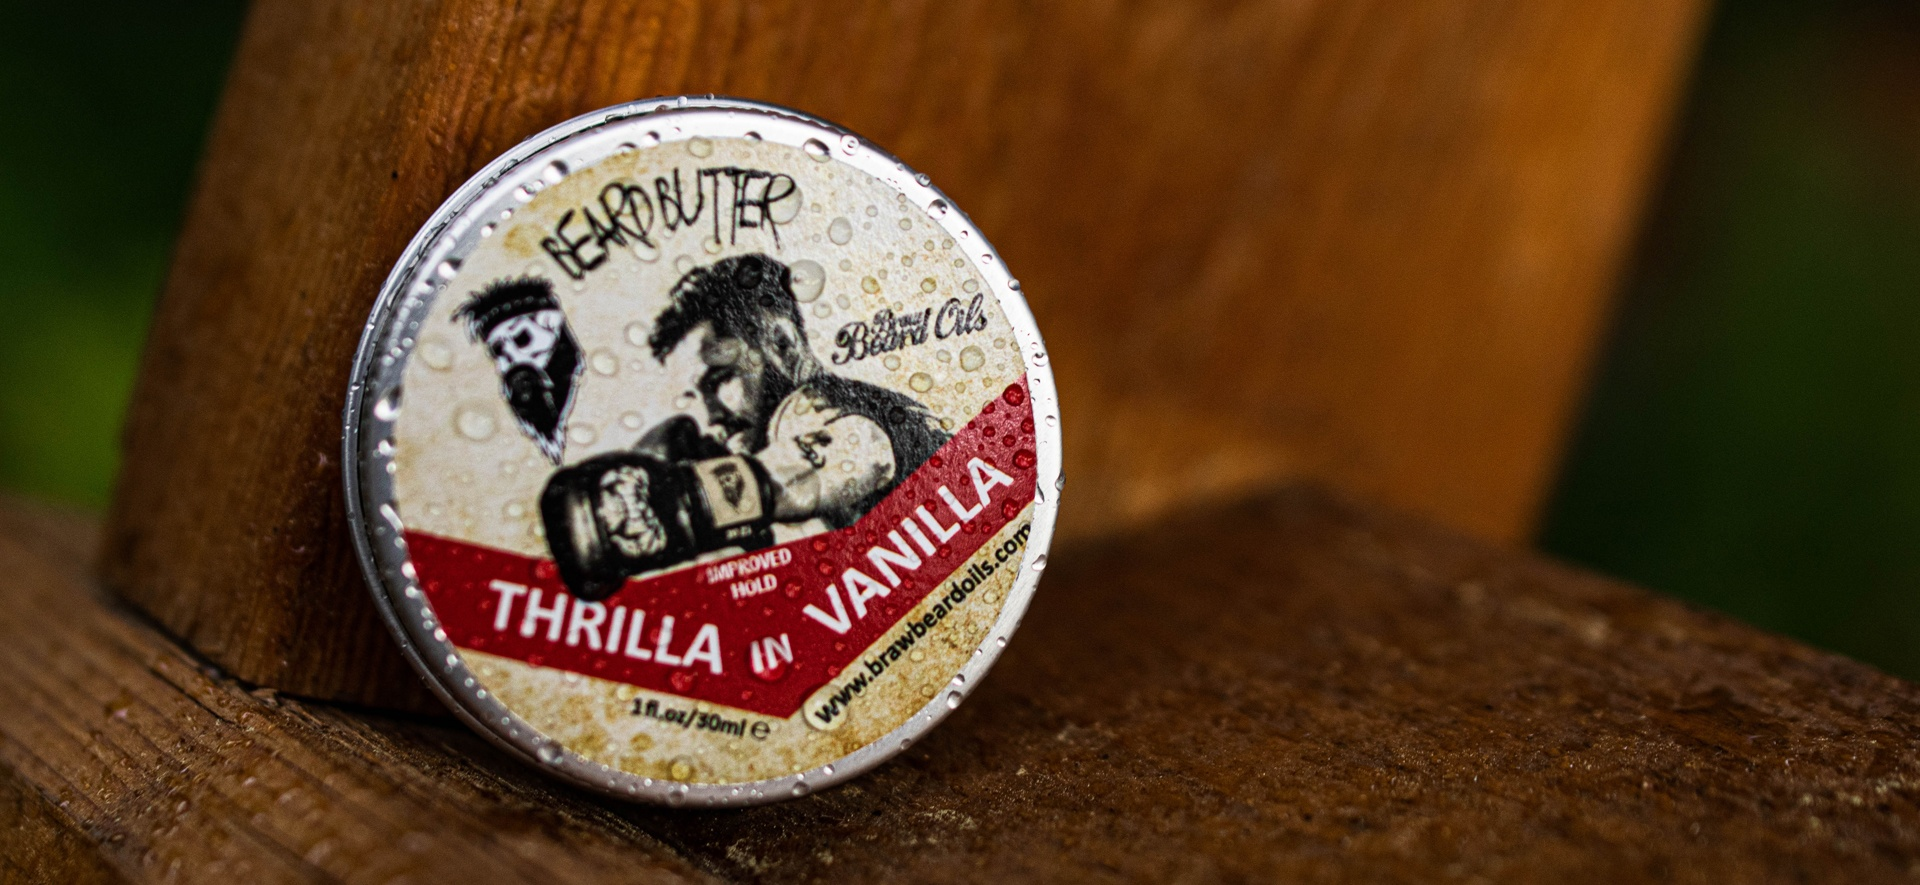 Beard Balm vs Wax. What is the difference?